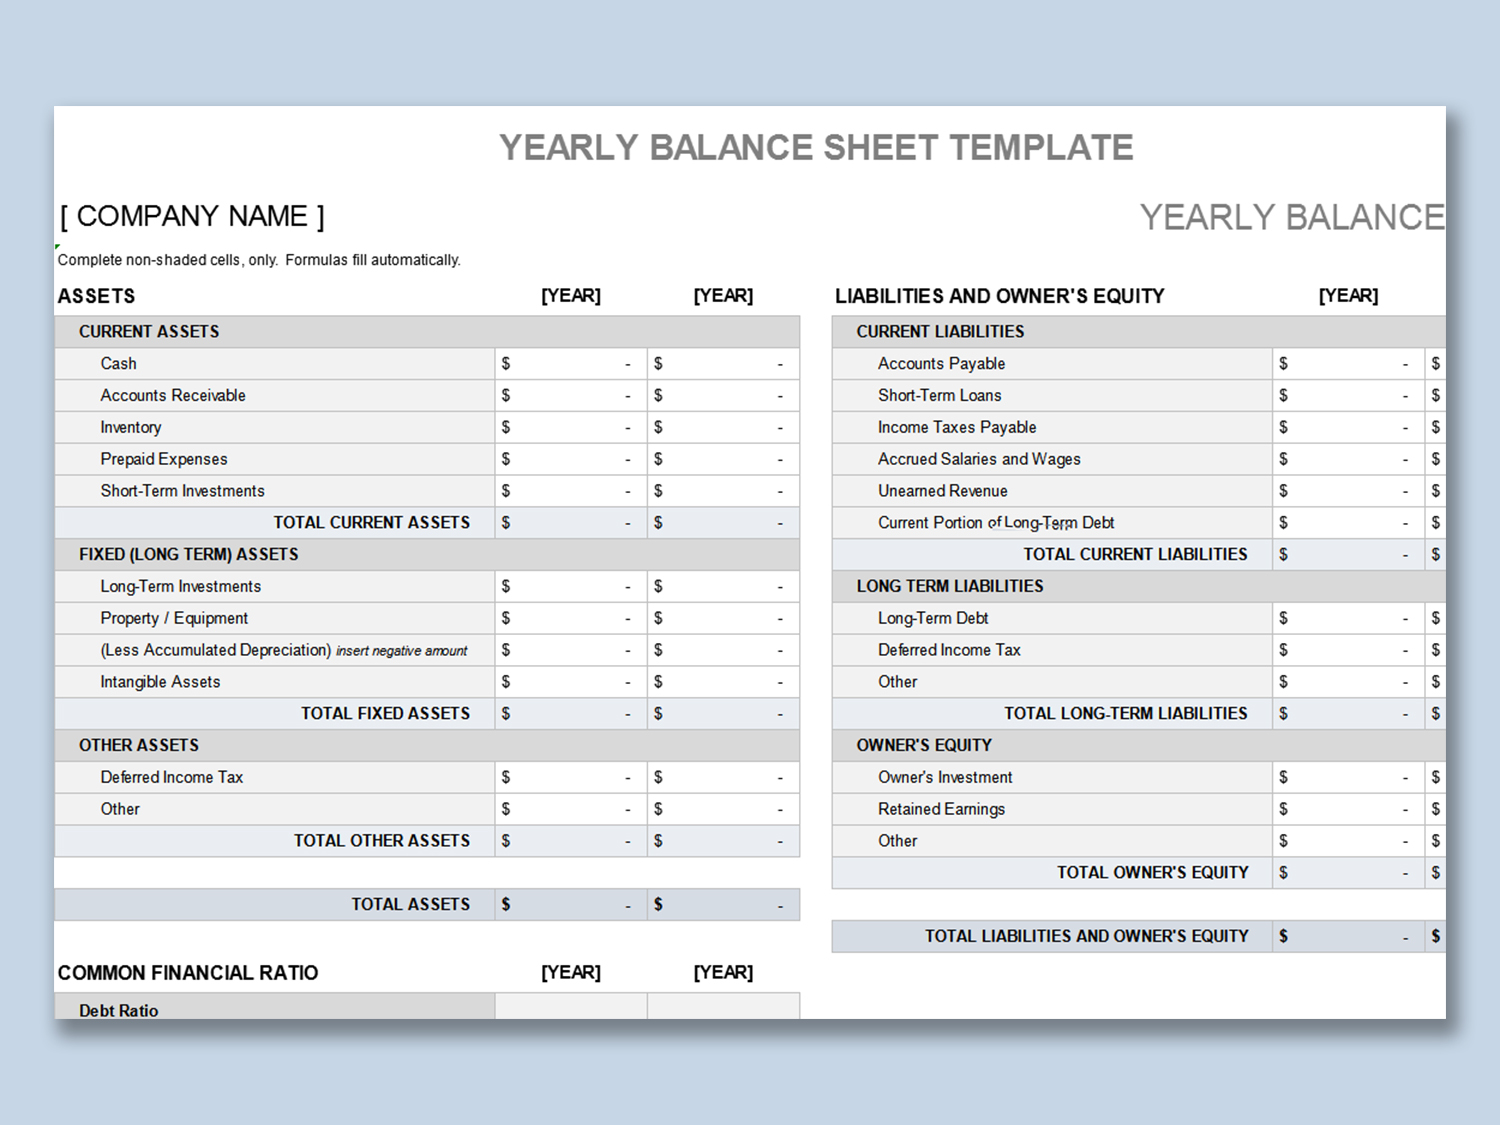 Prepaid Expenses Excel Template from d4z1onkegyrs5.cloudfront.net